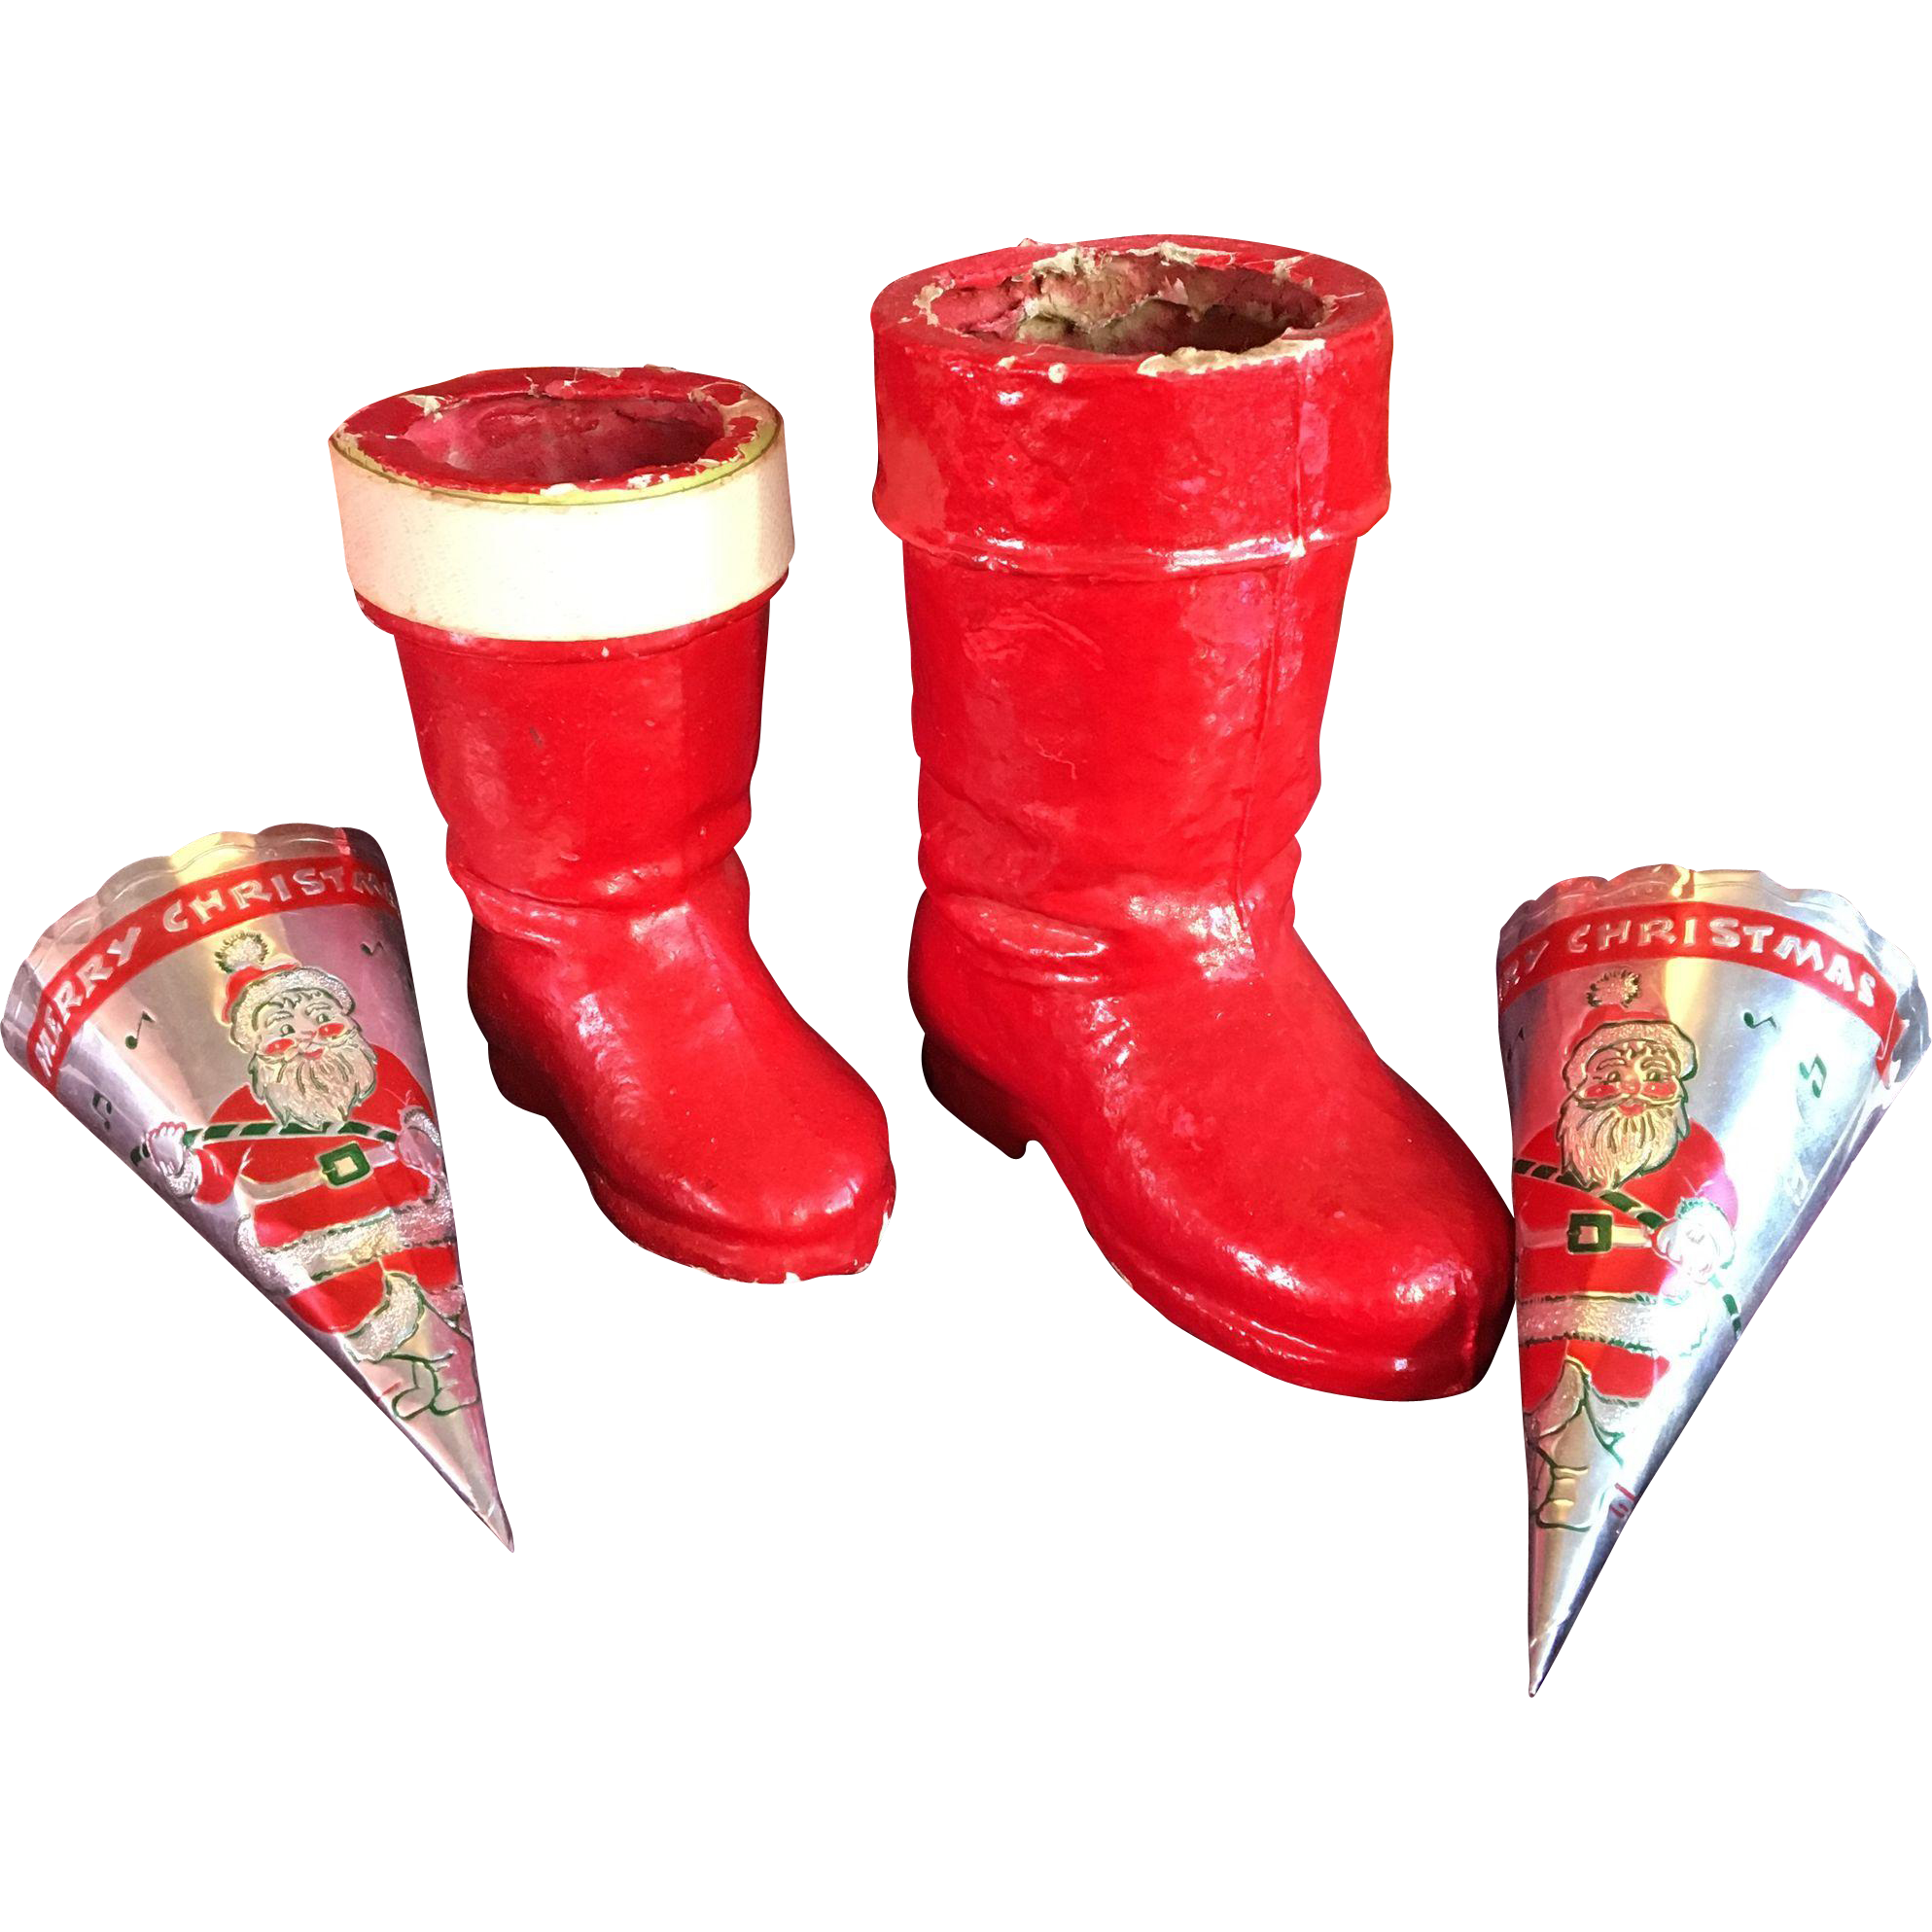 Group of Candy Containers Boots and Cones